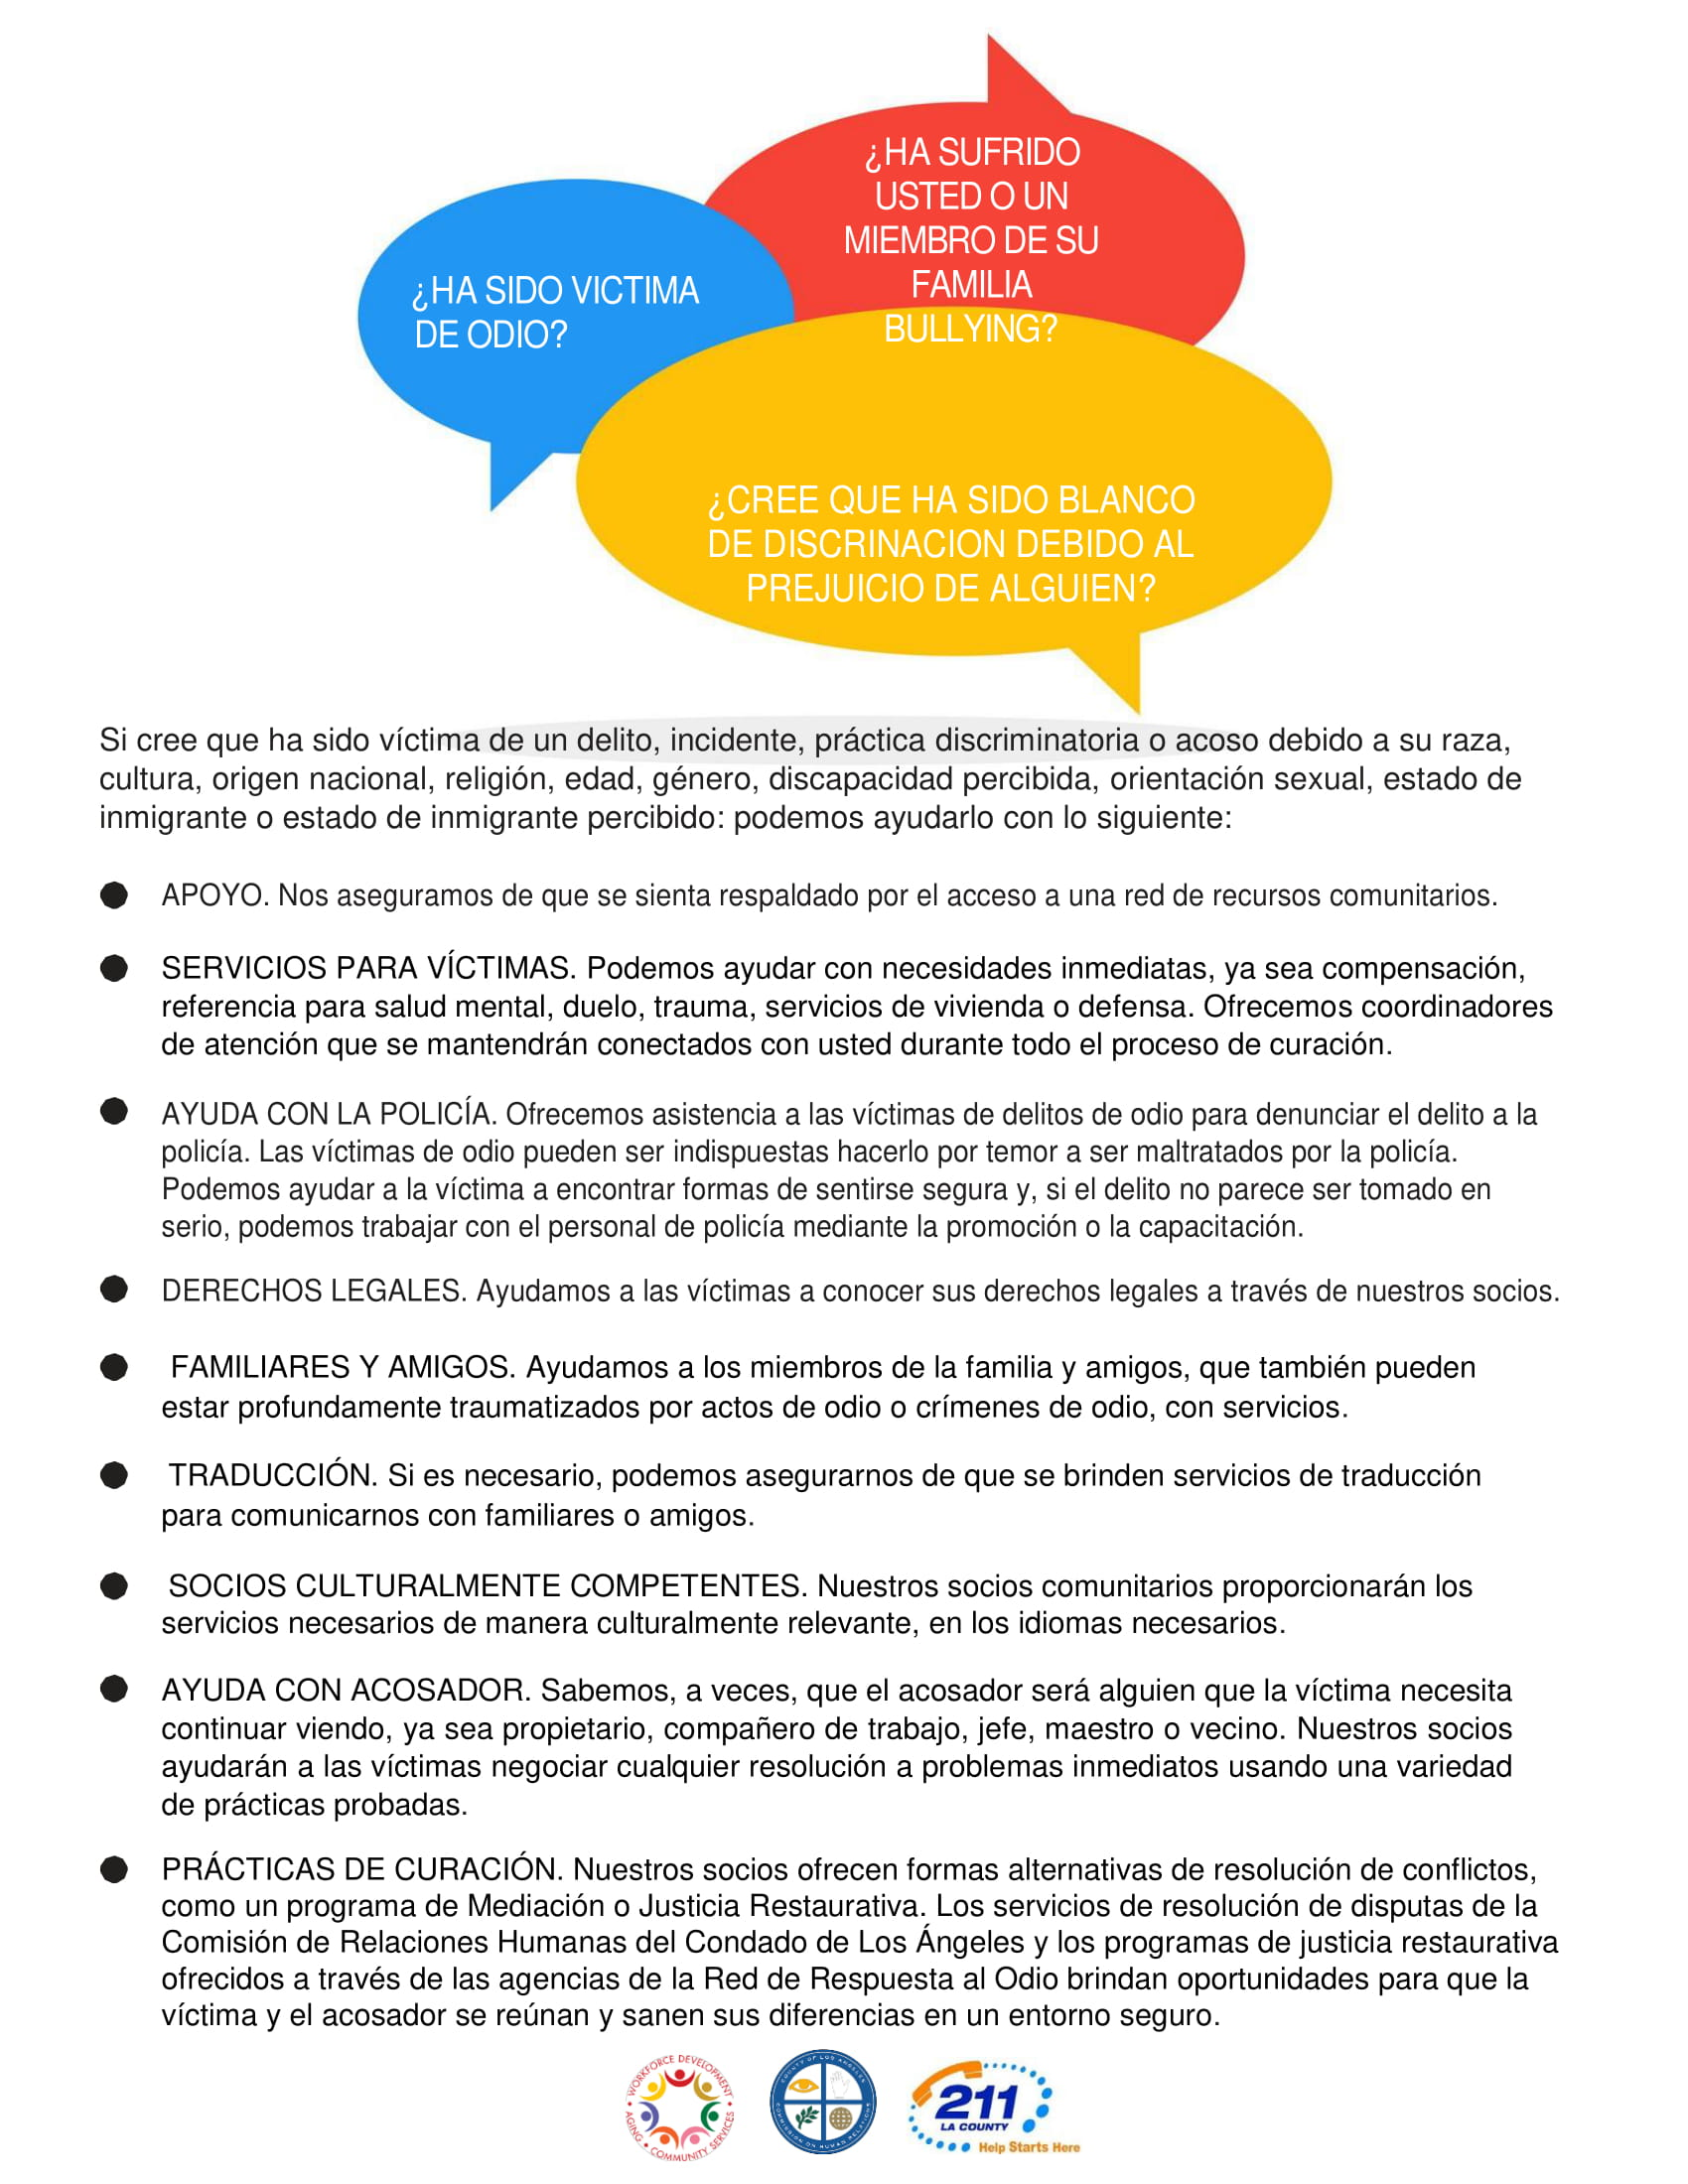 support services flyer image in spanish